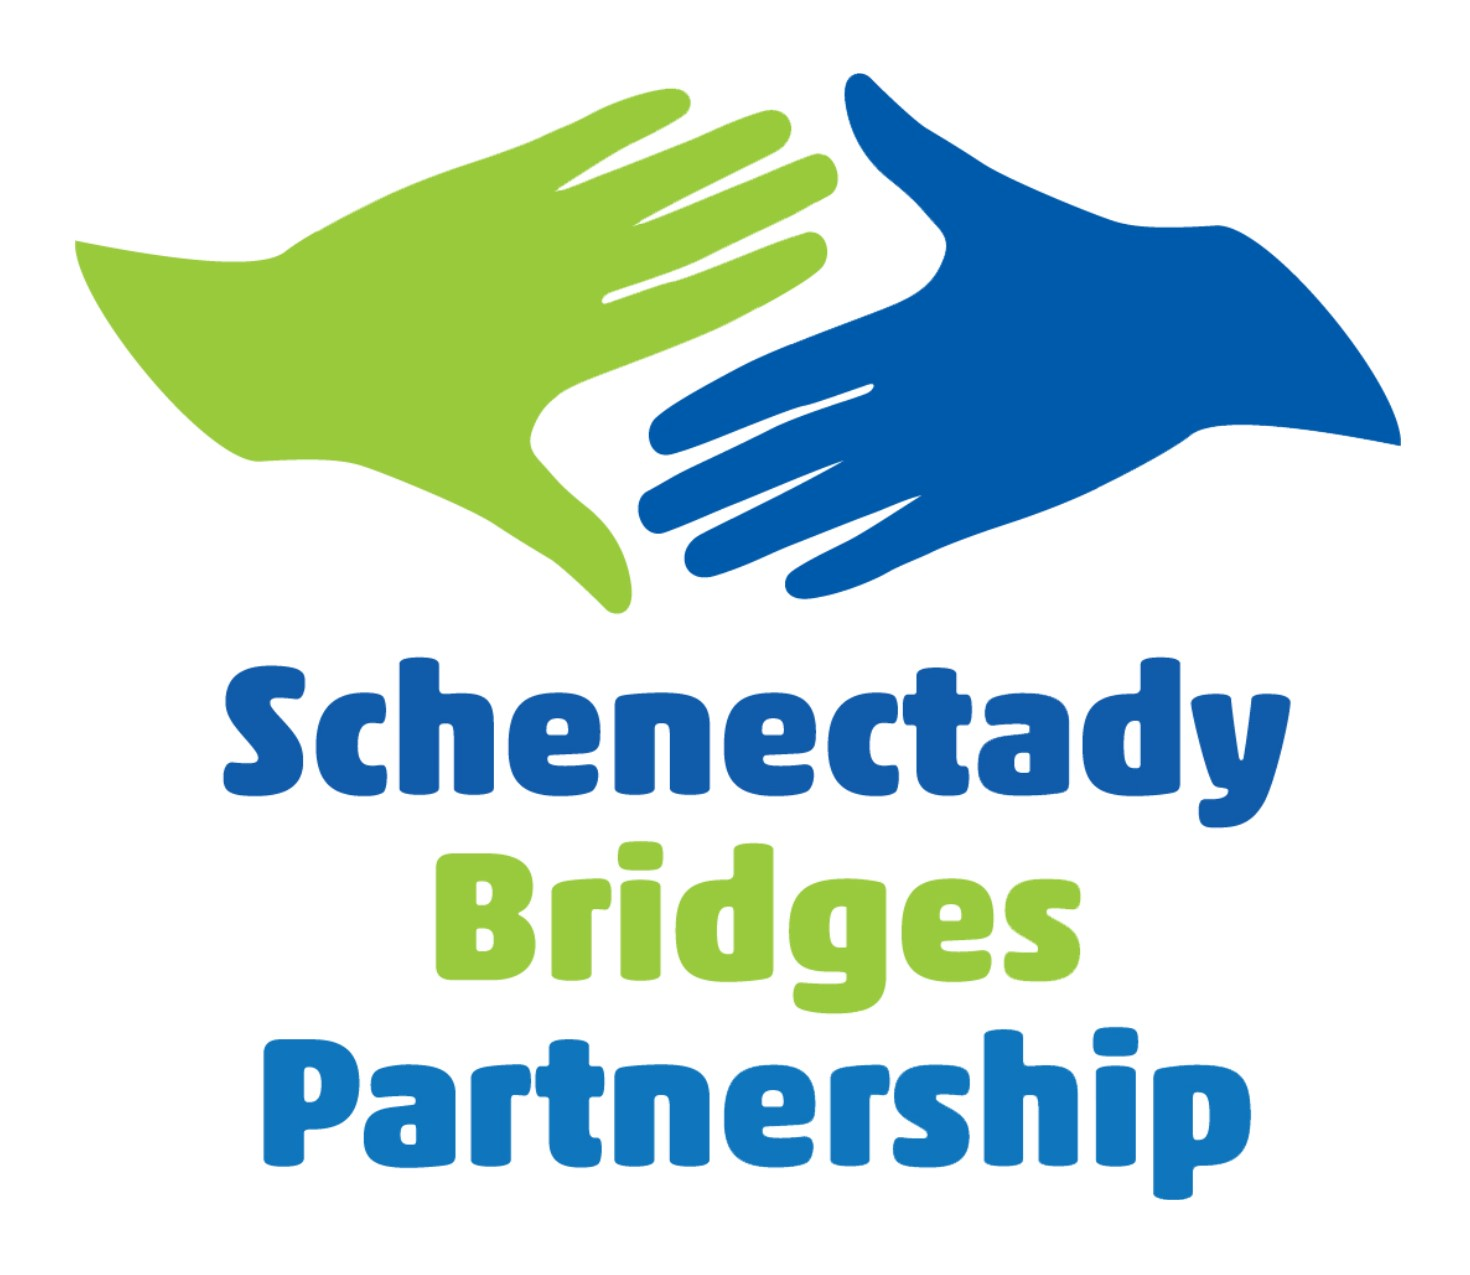 Uploaded Image: /vs-uploads/logos/Schenectady Bridges logo.jpg